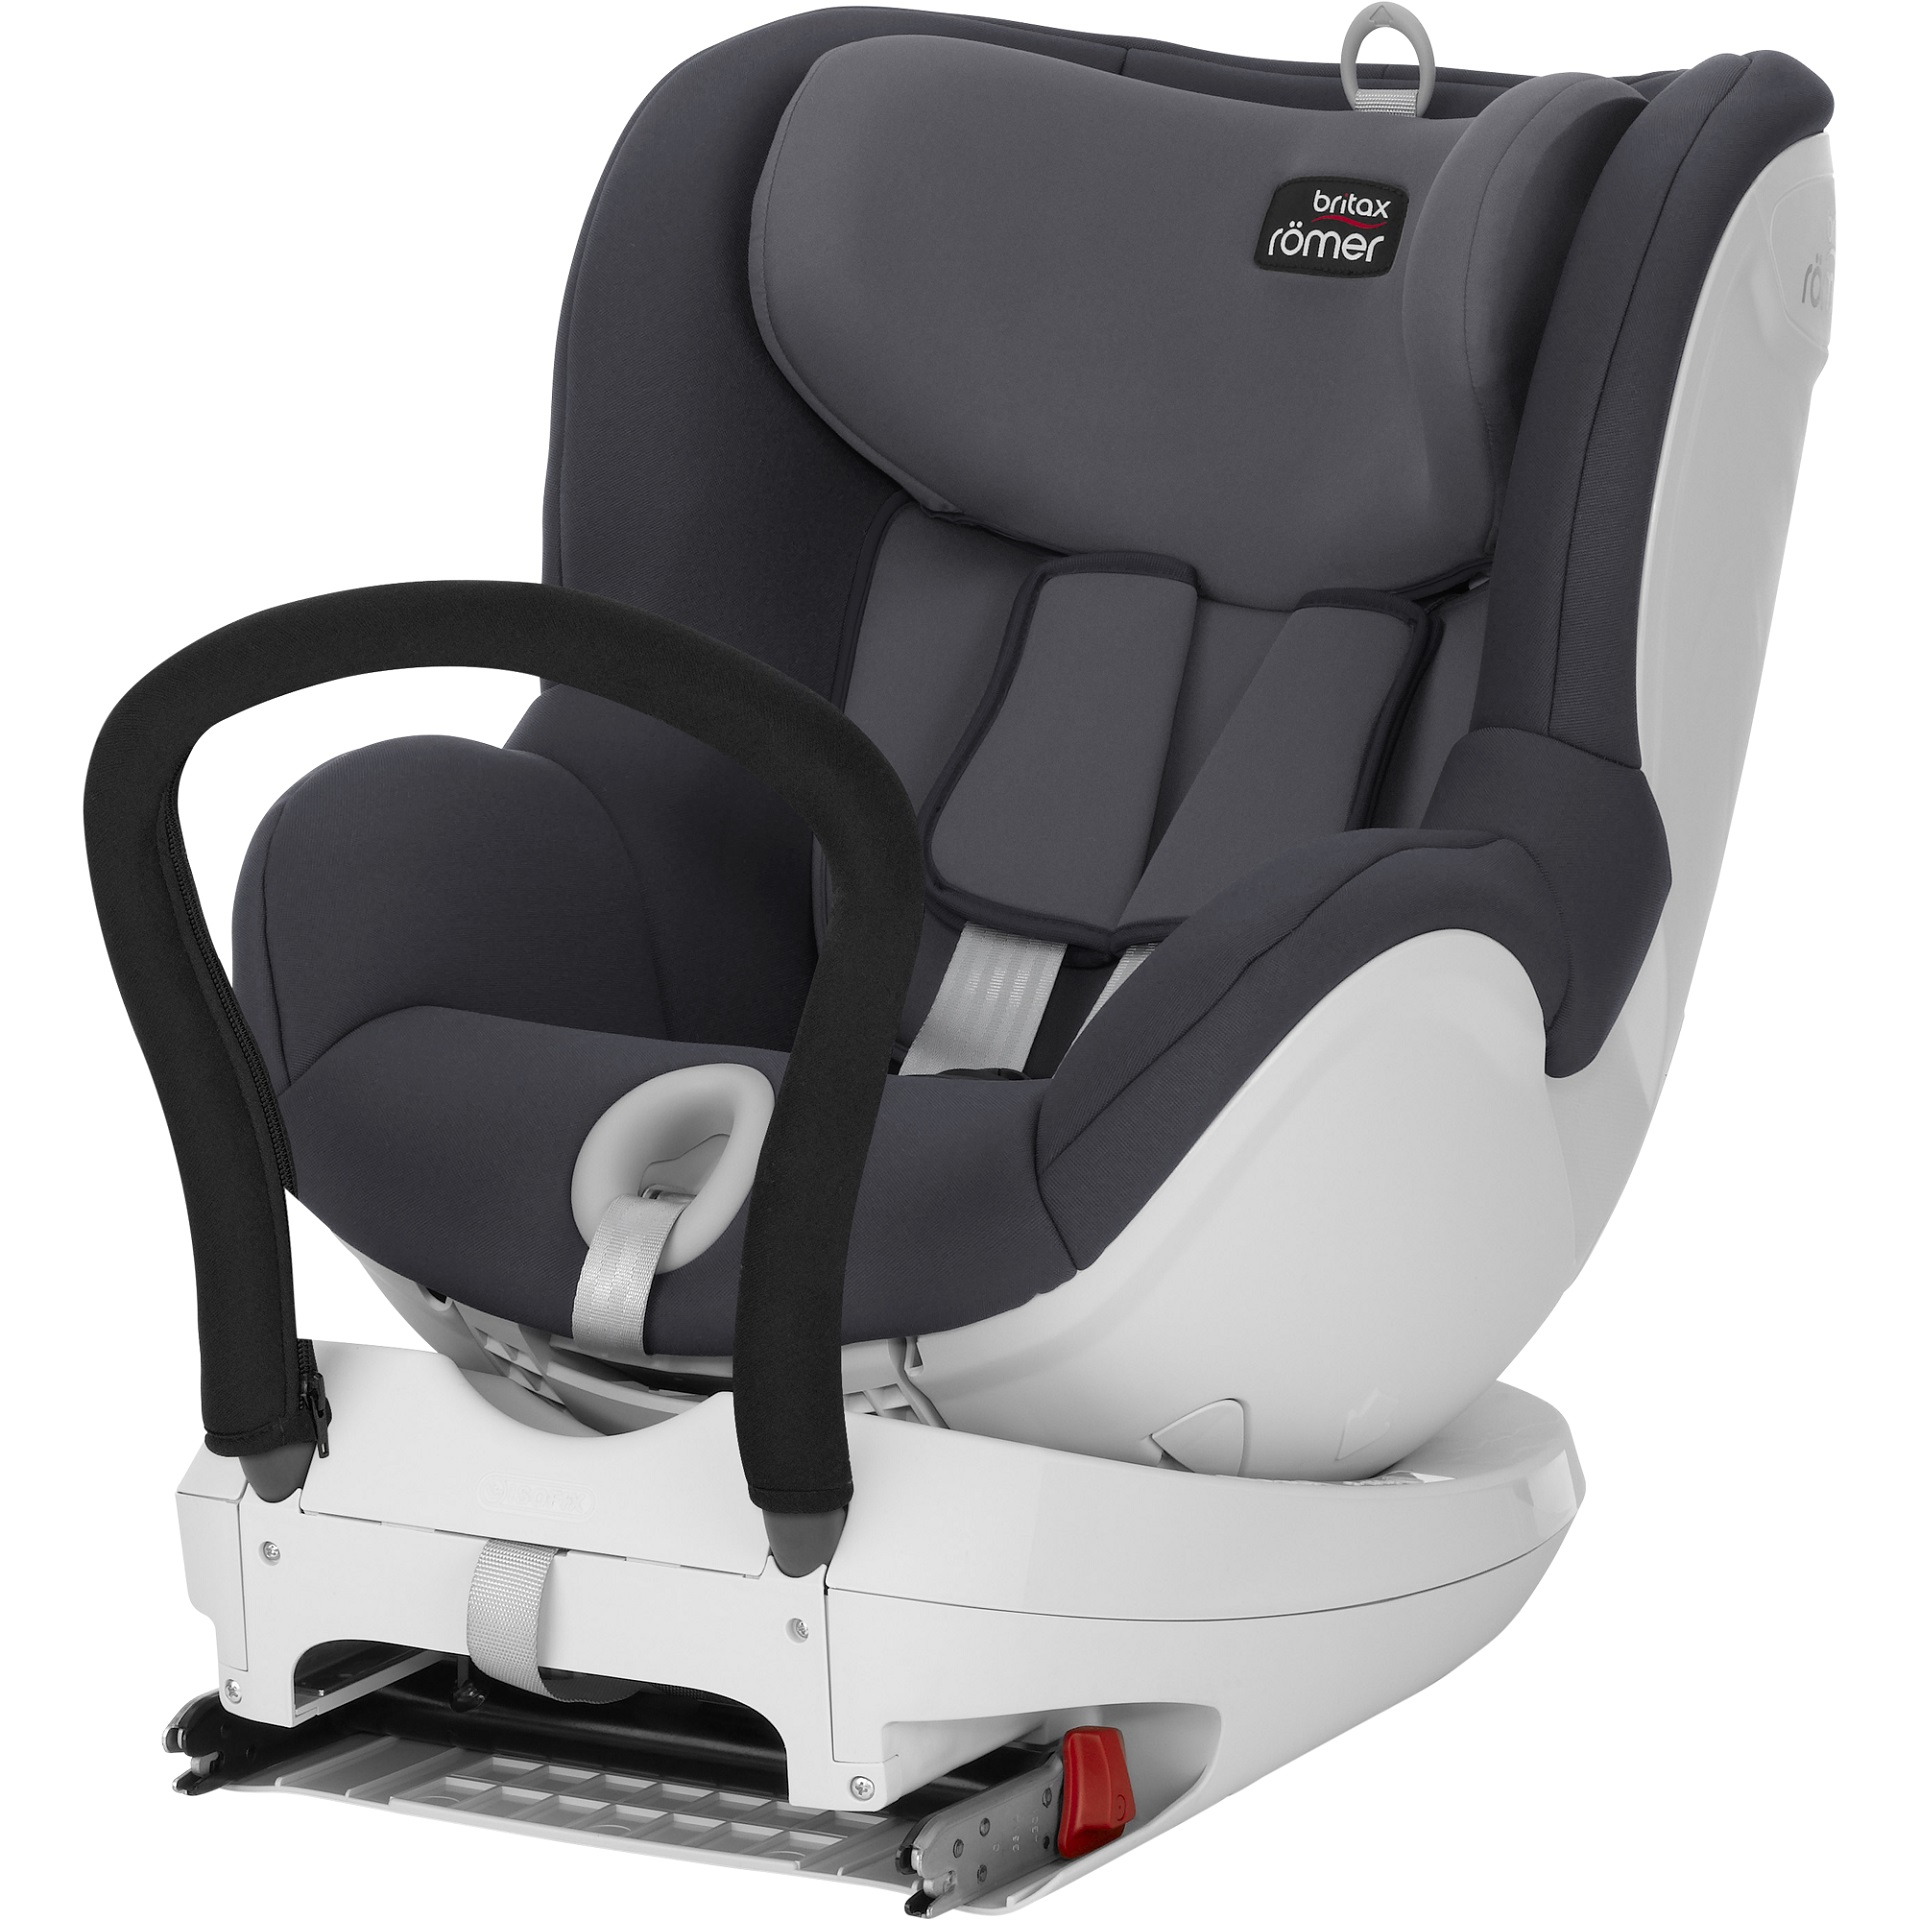 britax r mer car seat dualfix buy at kidsroom car. Black Bedroom Furniture Sets. Home Design Ideas